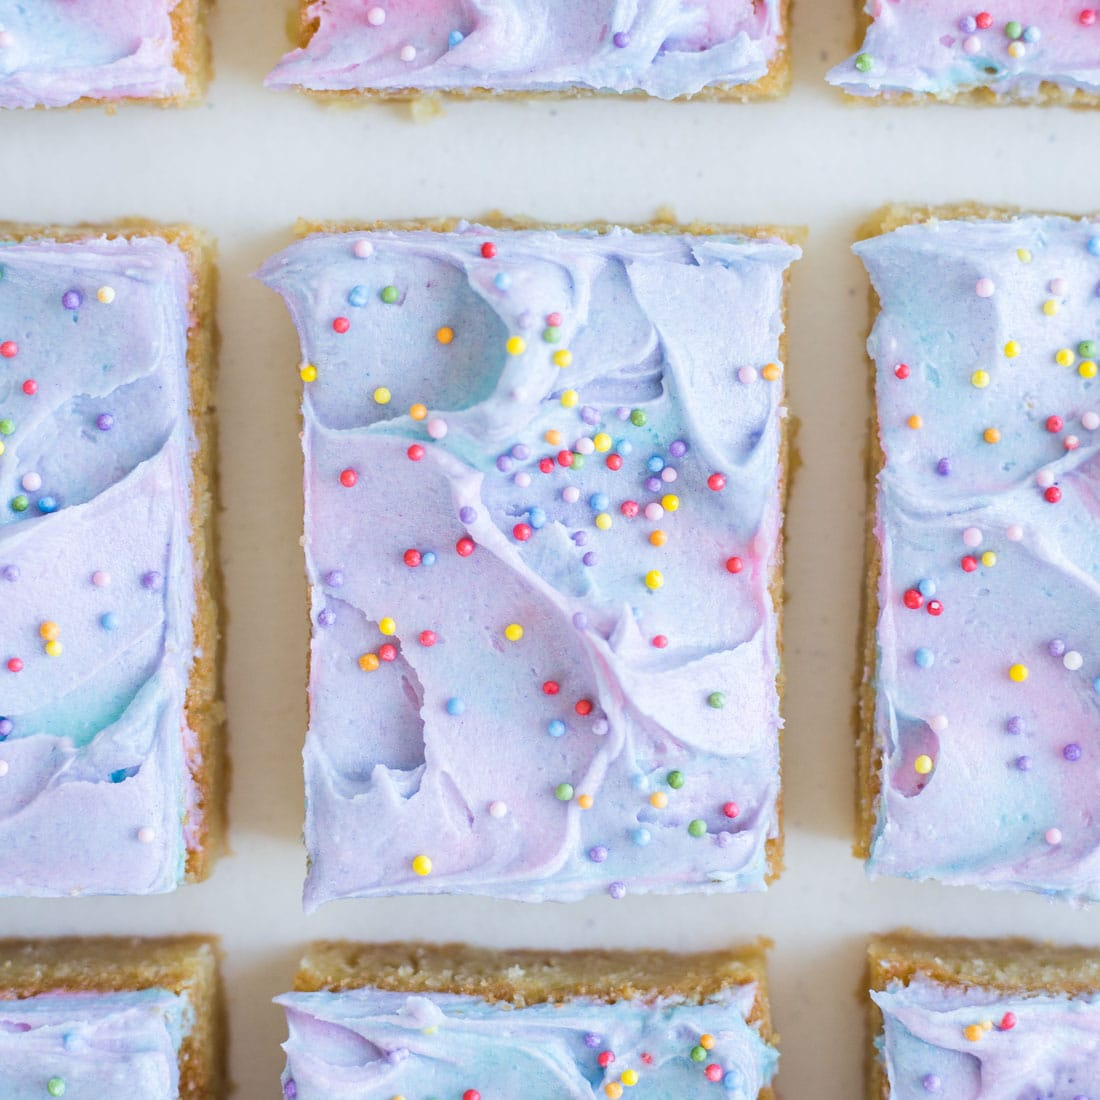 Miss Jones Baking Co Magical Lisa Frank-Inspired Butter Bars image from top